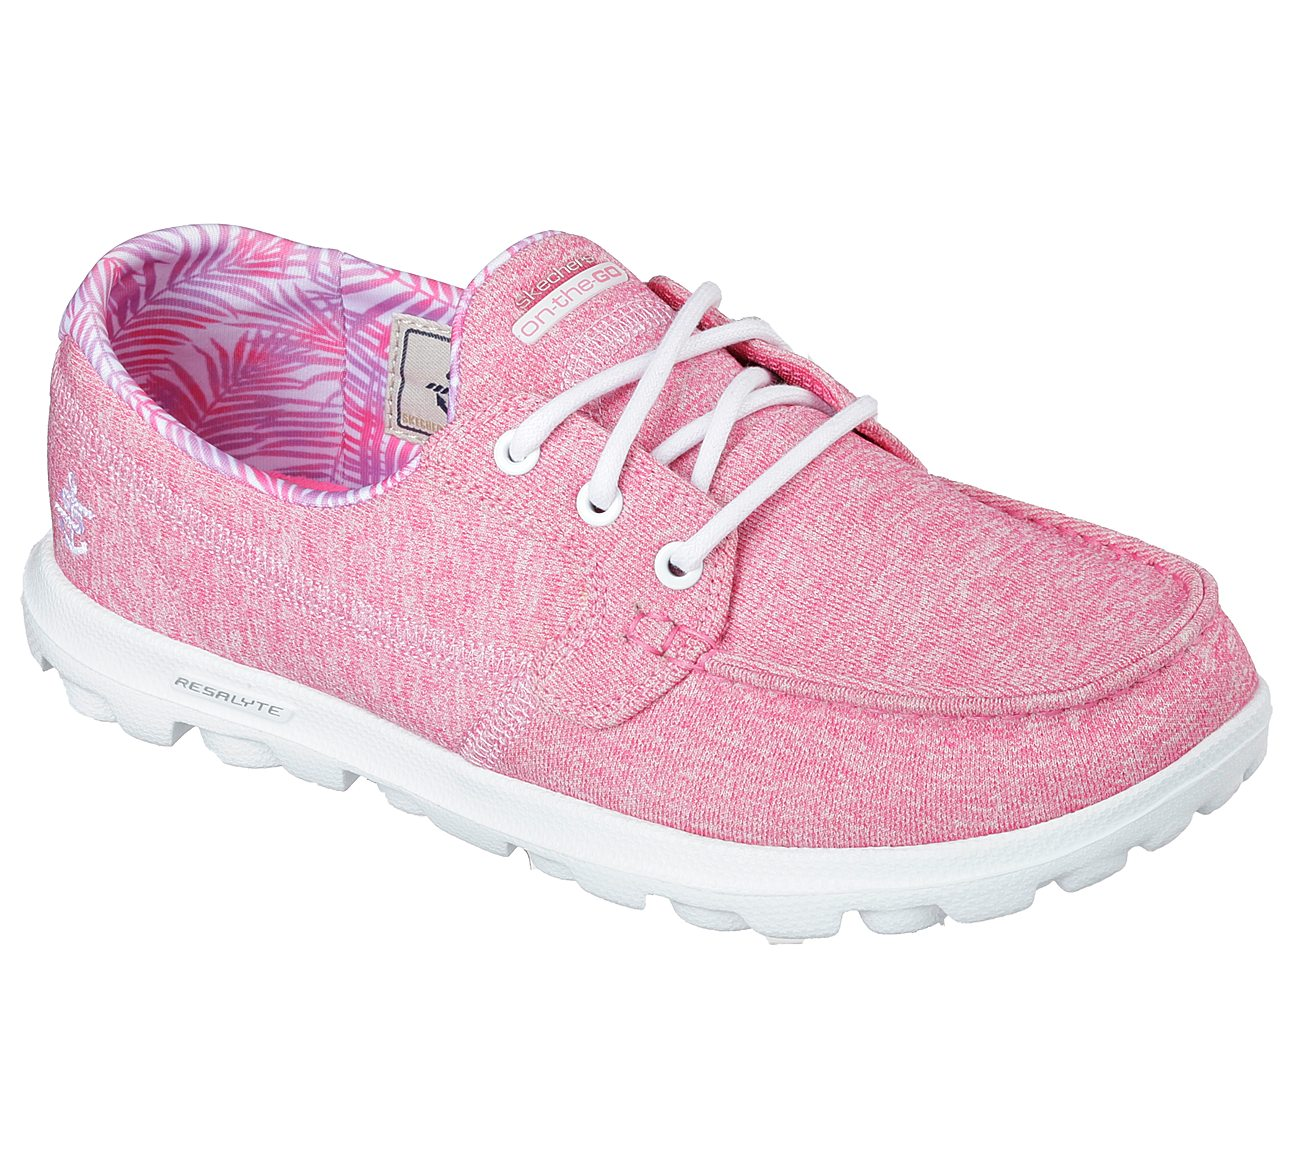 Skechers On The Go Women's Slip-on Boat Walking Shoes Size 8.5